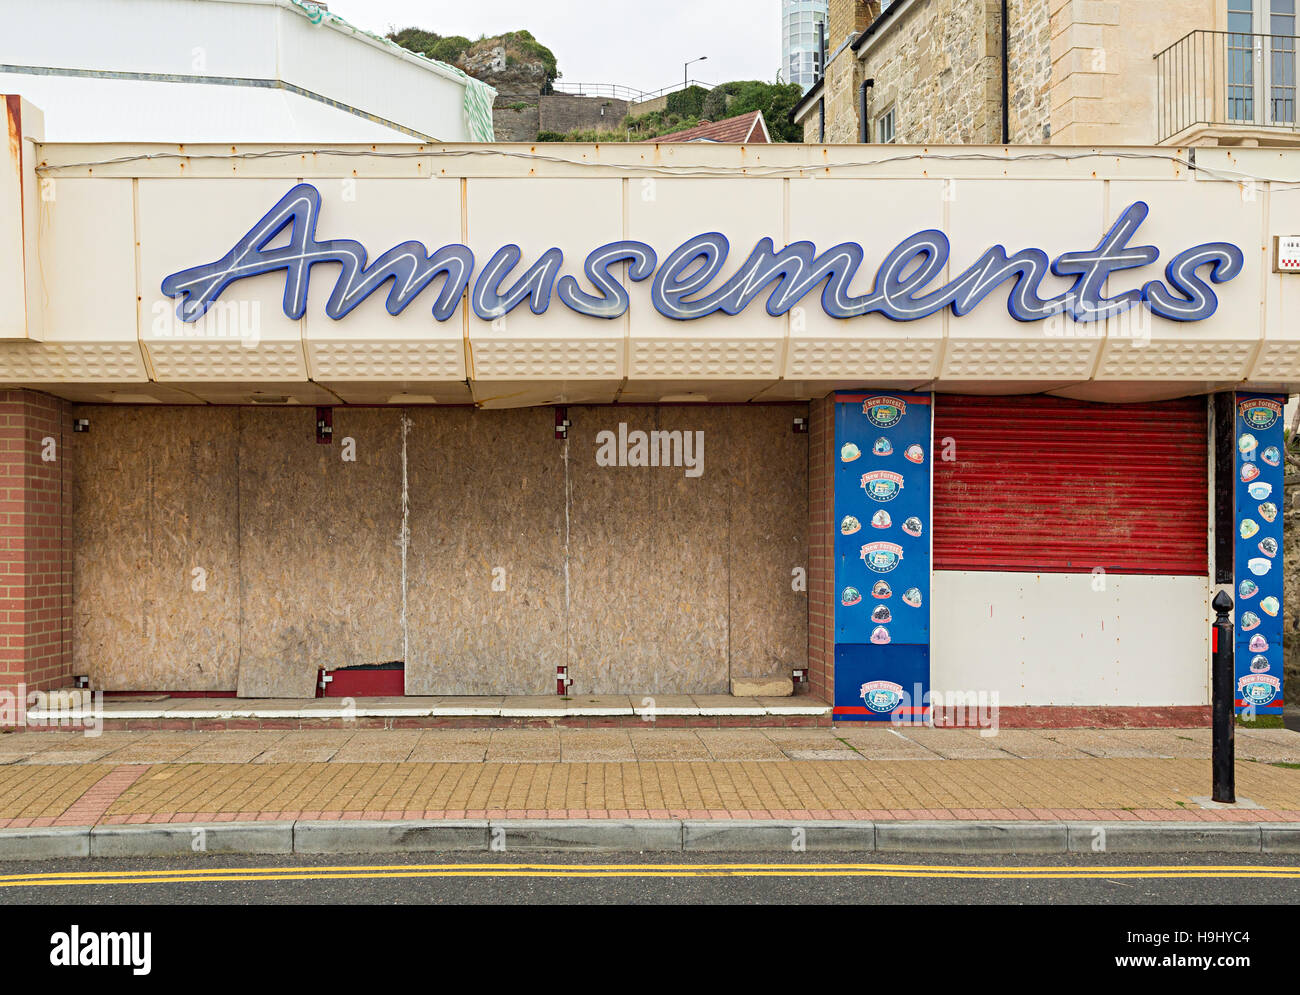 Closed and boarded up amusements arcade on seafront, Ventnor, Isle of Wight, UK - Stock Image